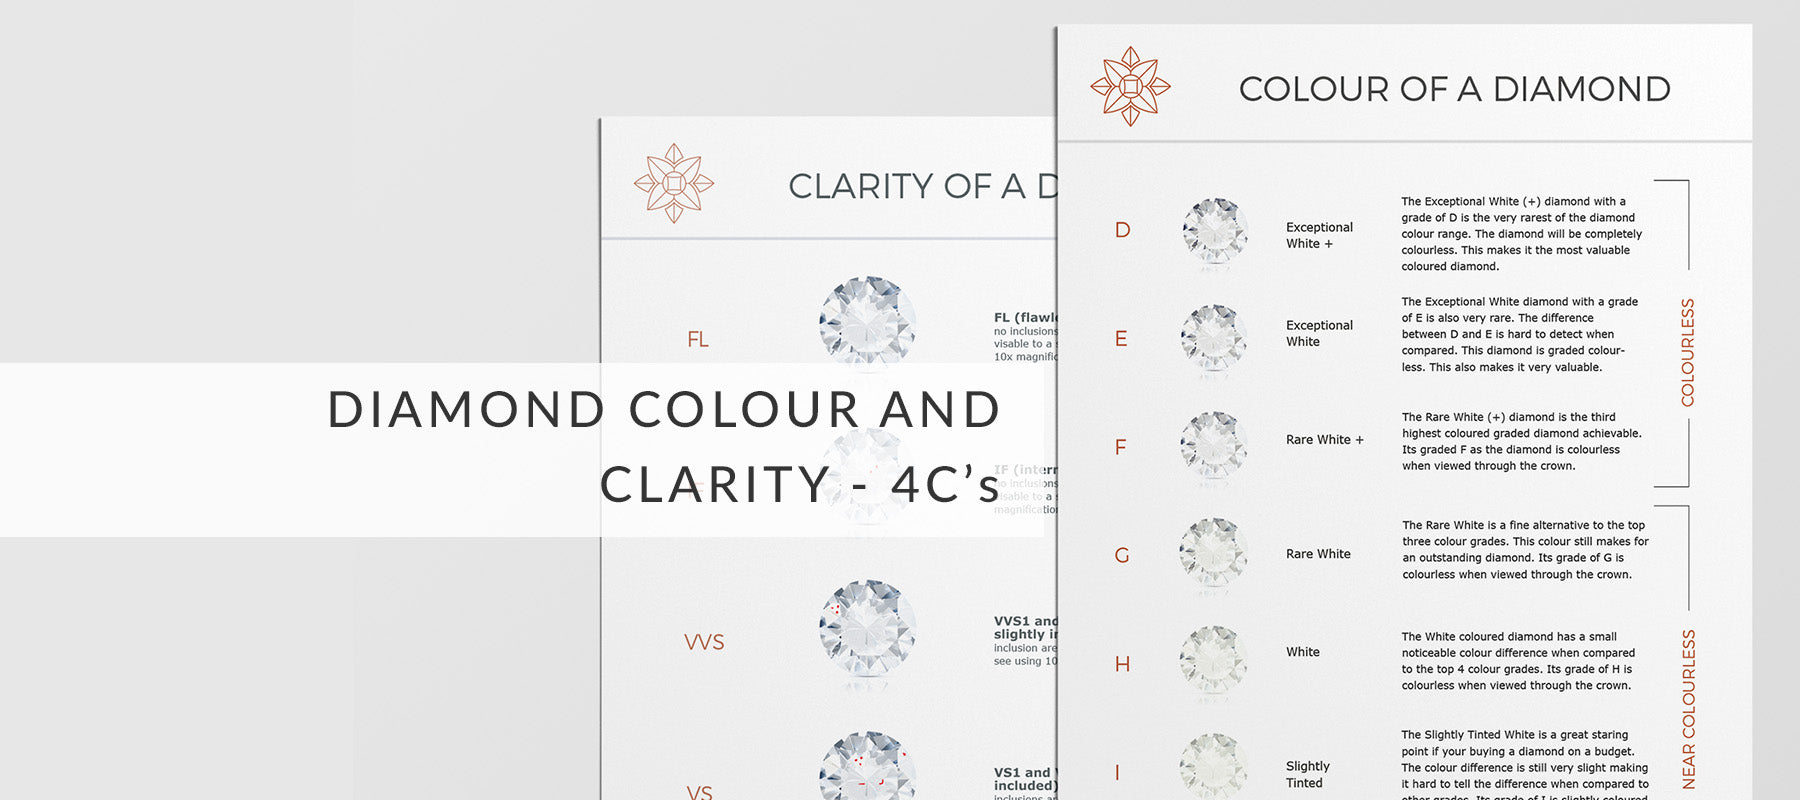 diamond colour and clarity 4c's education guides